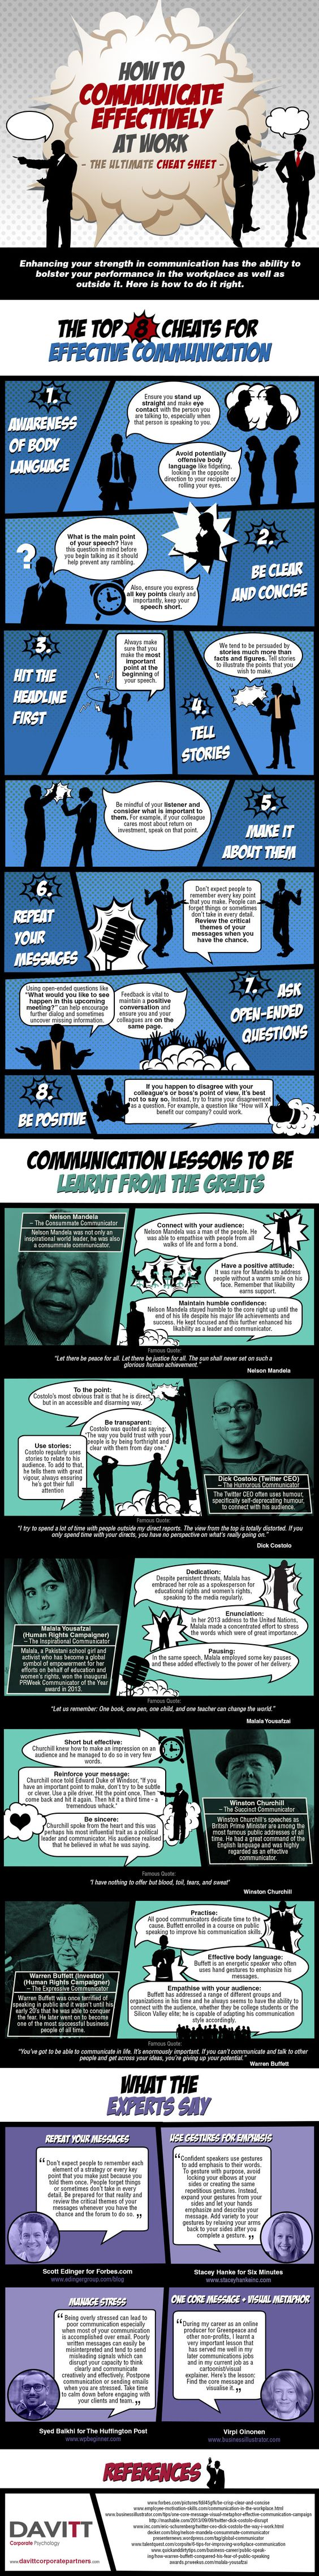 how to communicate effectively at work the ultimate cheat sheet how to communicate effectively at work the ultimate cheat sheet infographic communication business